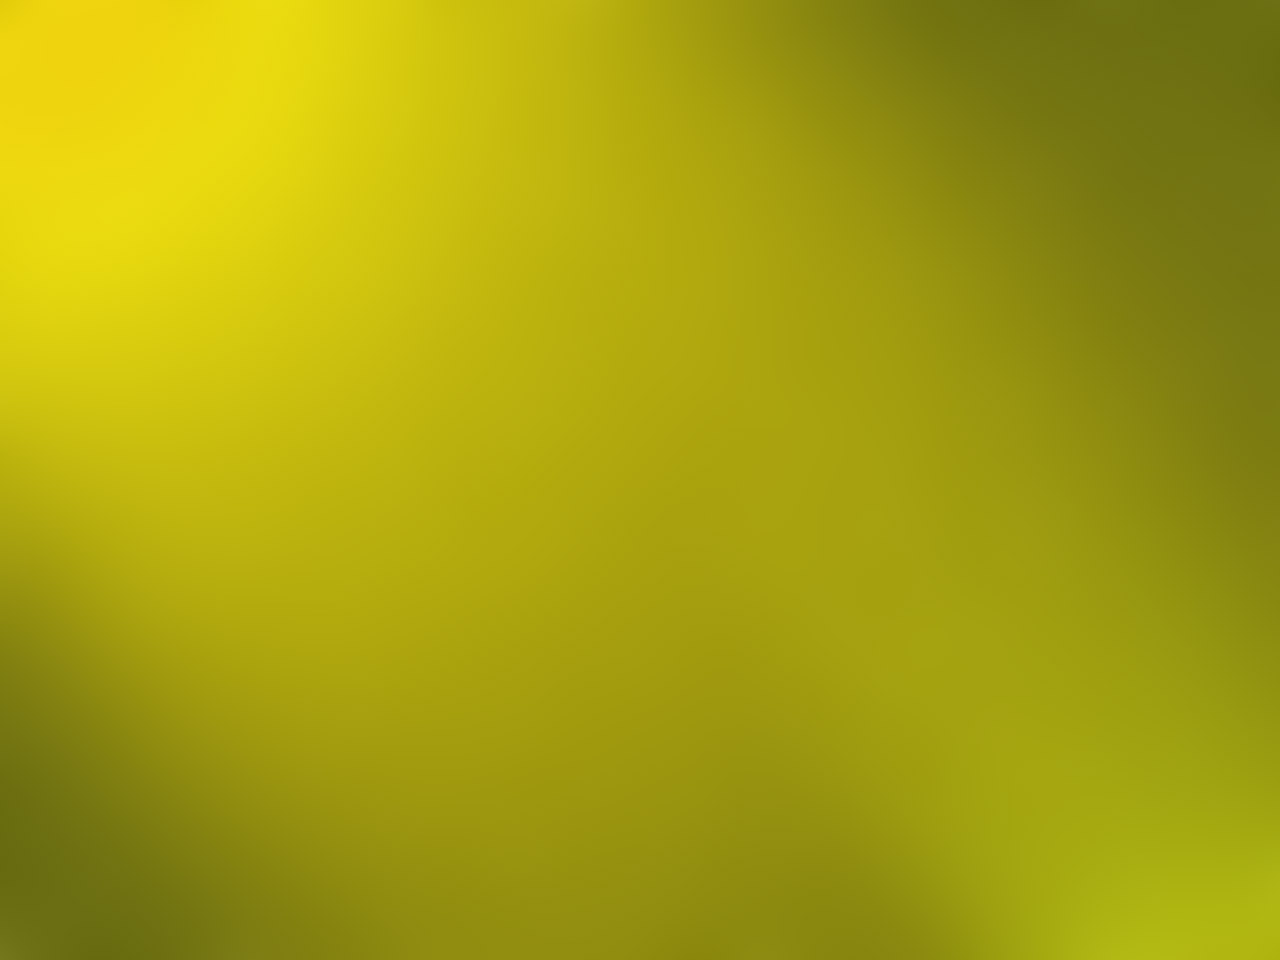 abstract_background_yellow